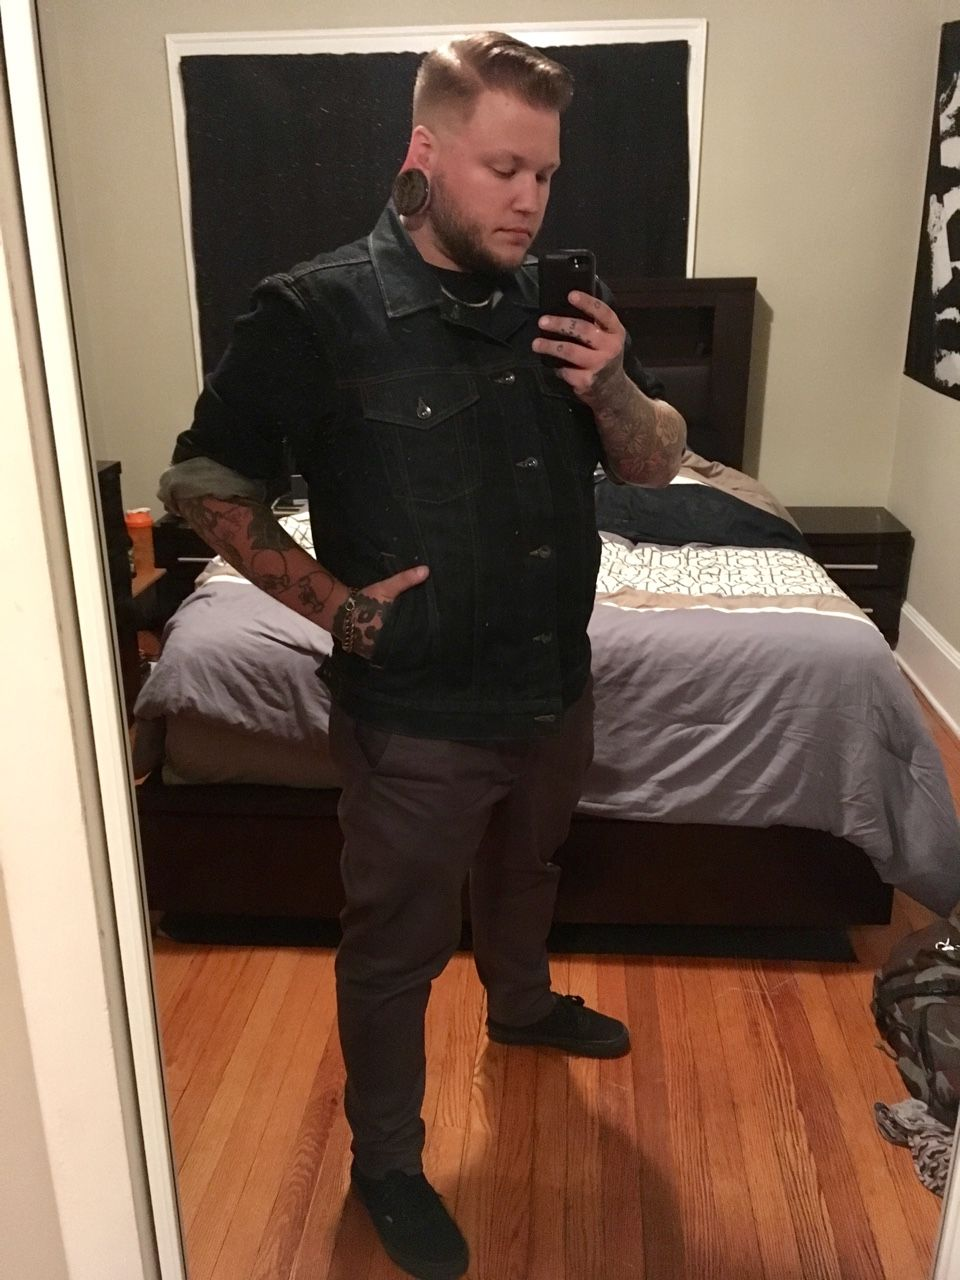 Chubby Guy Swag : Photo | Coby | Pinterest